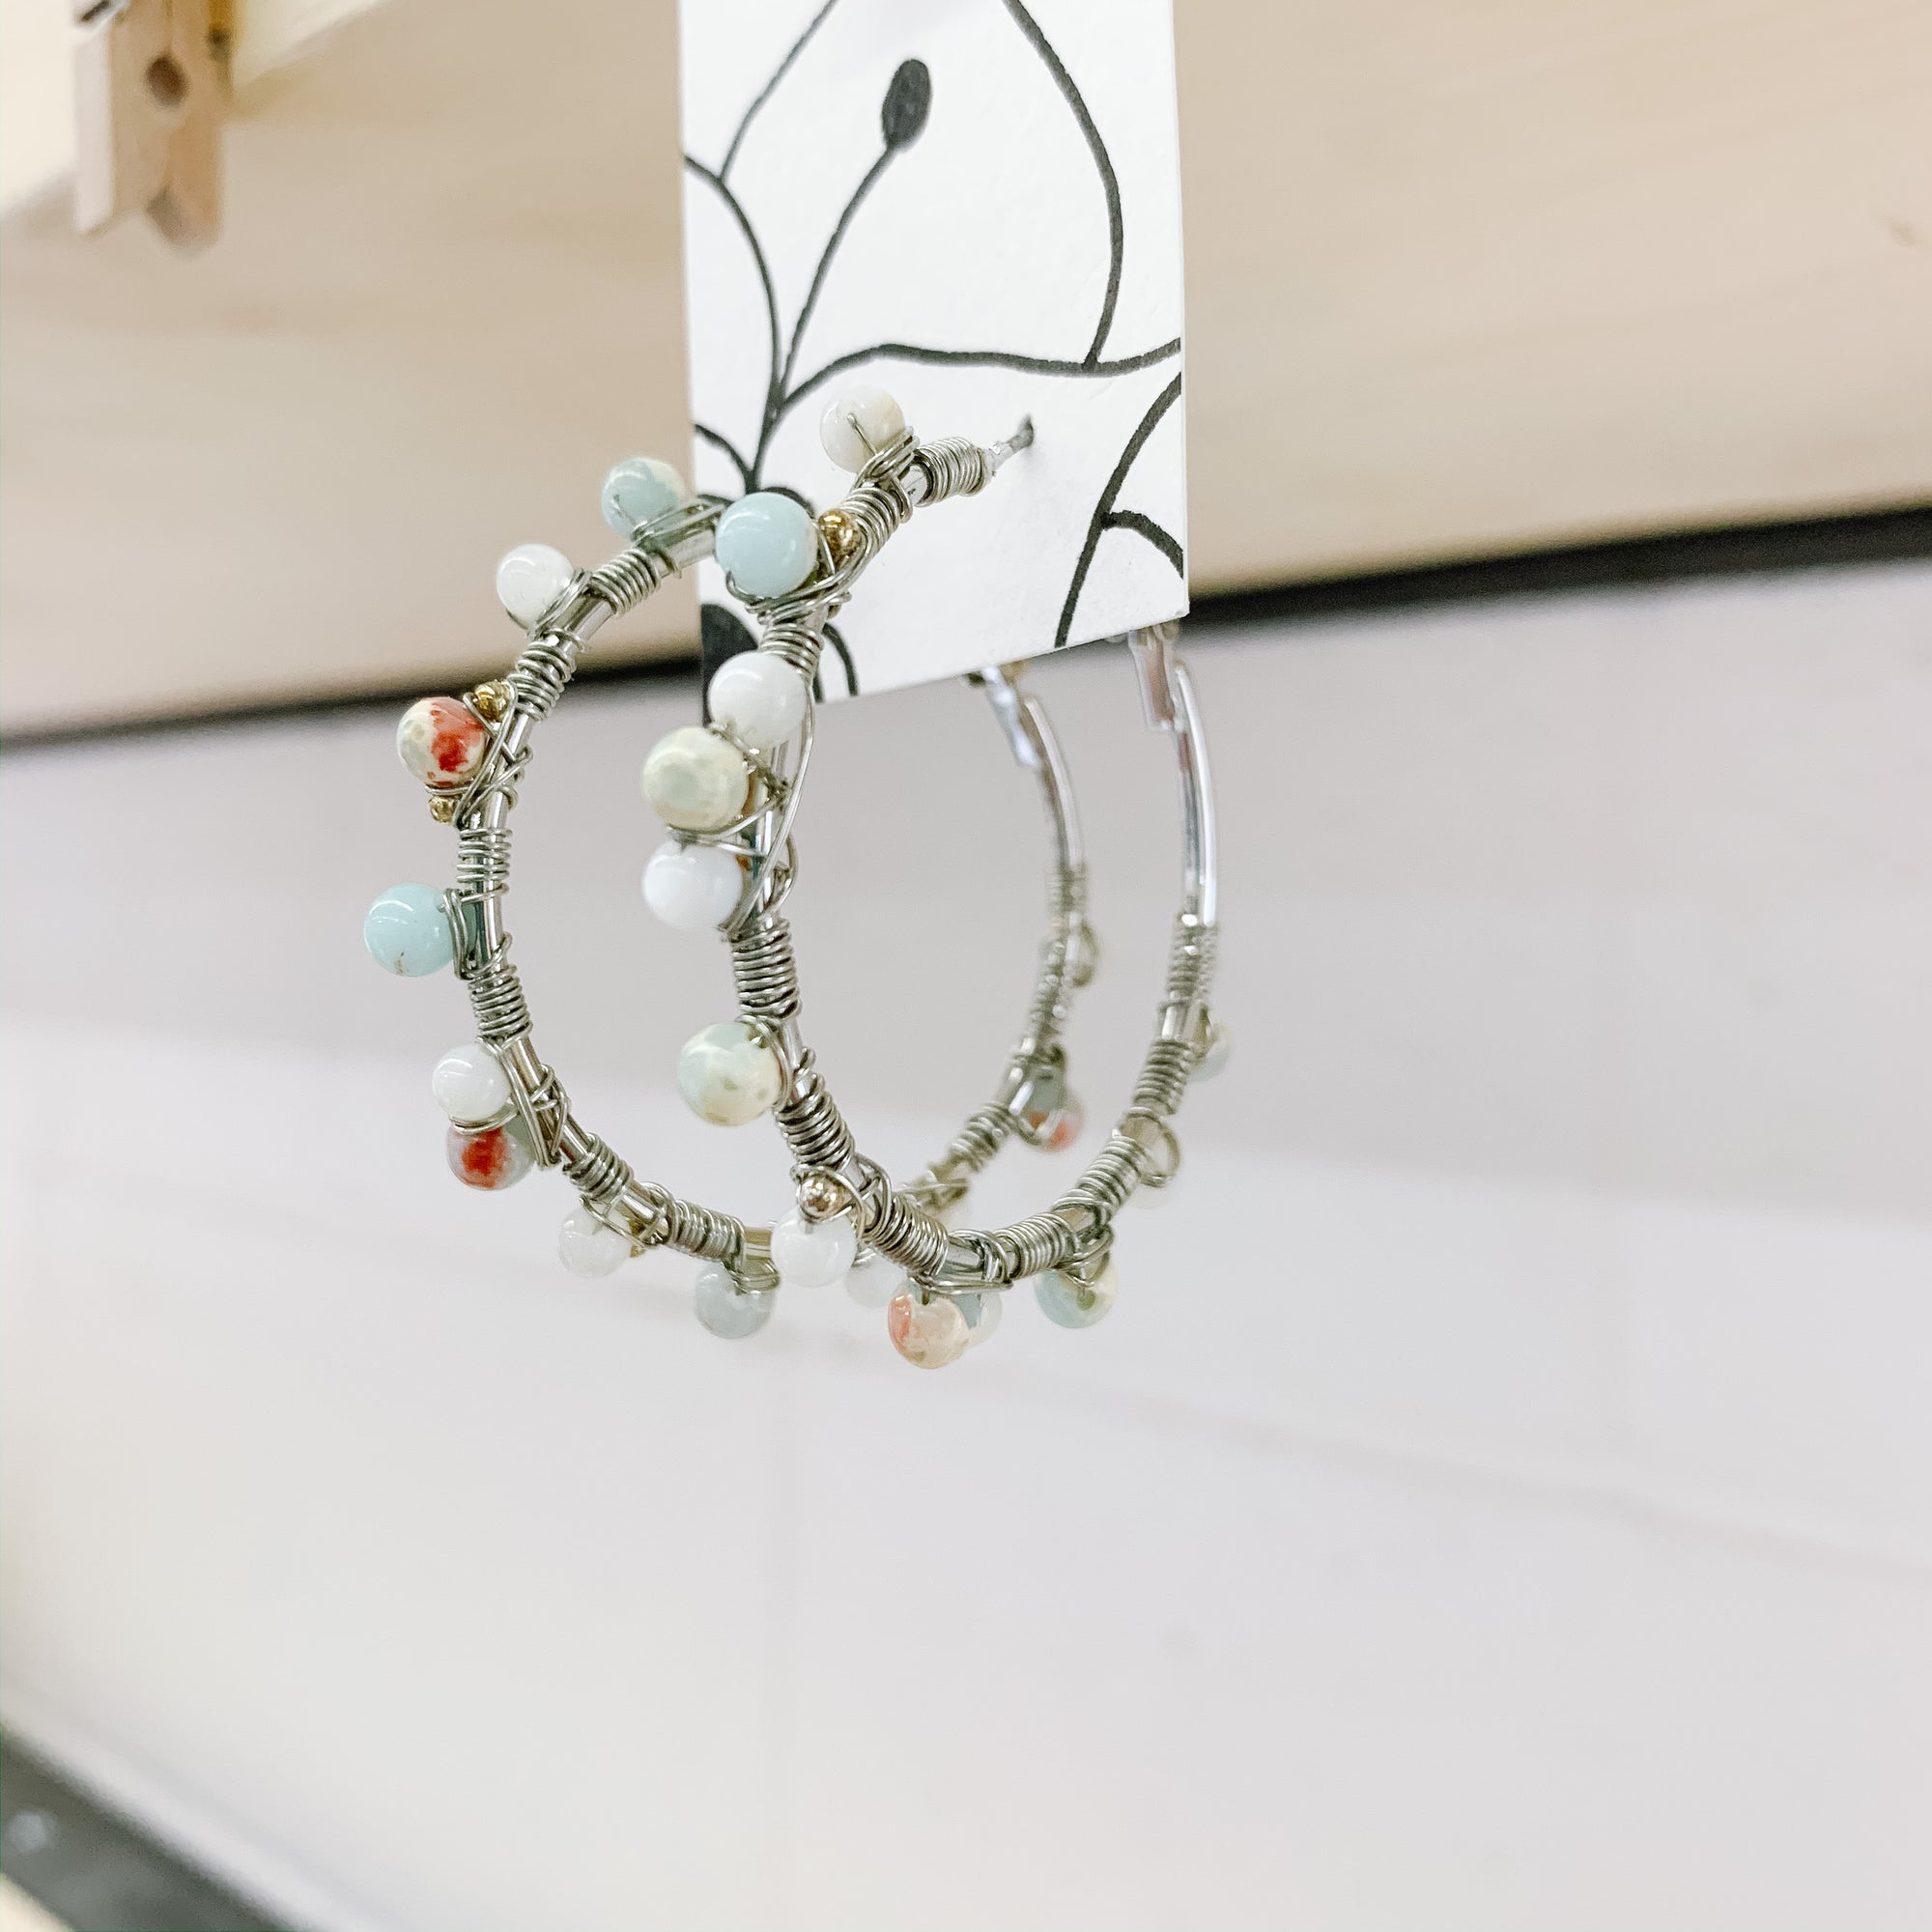 Jasper Crystal Hoop Earrings - Femme Wares Niagara Local Small Business